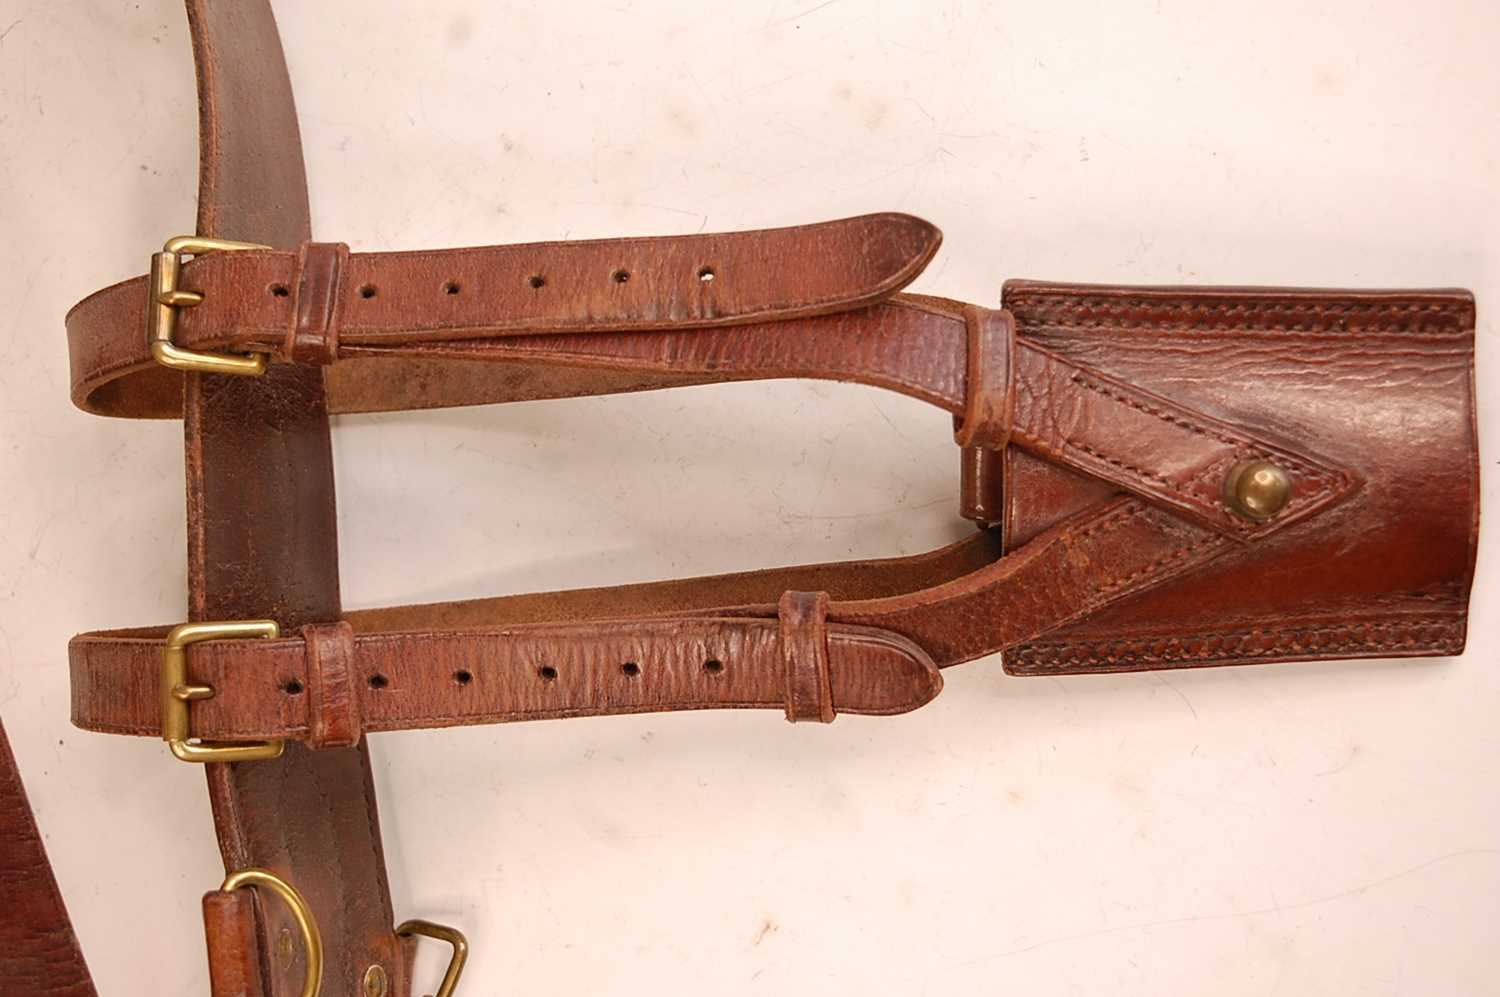 A brown leather and brass mounted Sam Browne belt with cross strap and sword frog. - Image 2 of 2